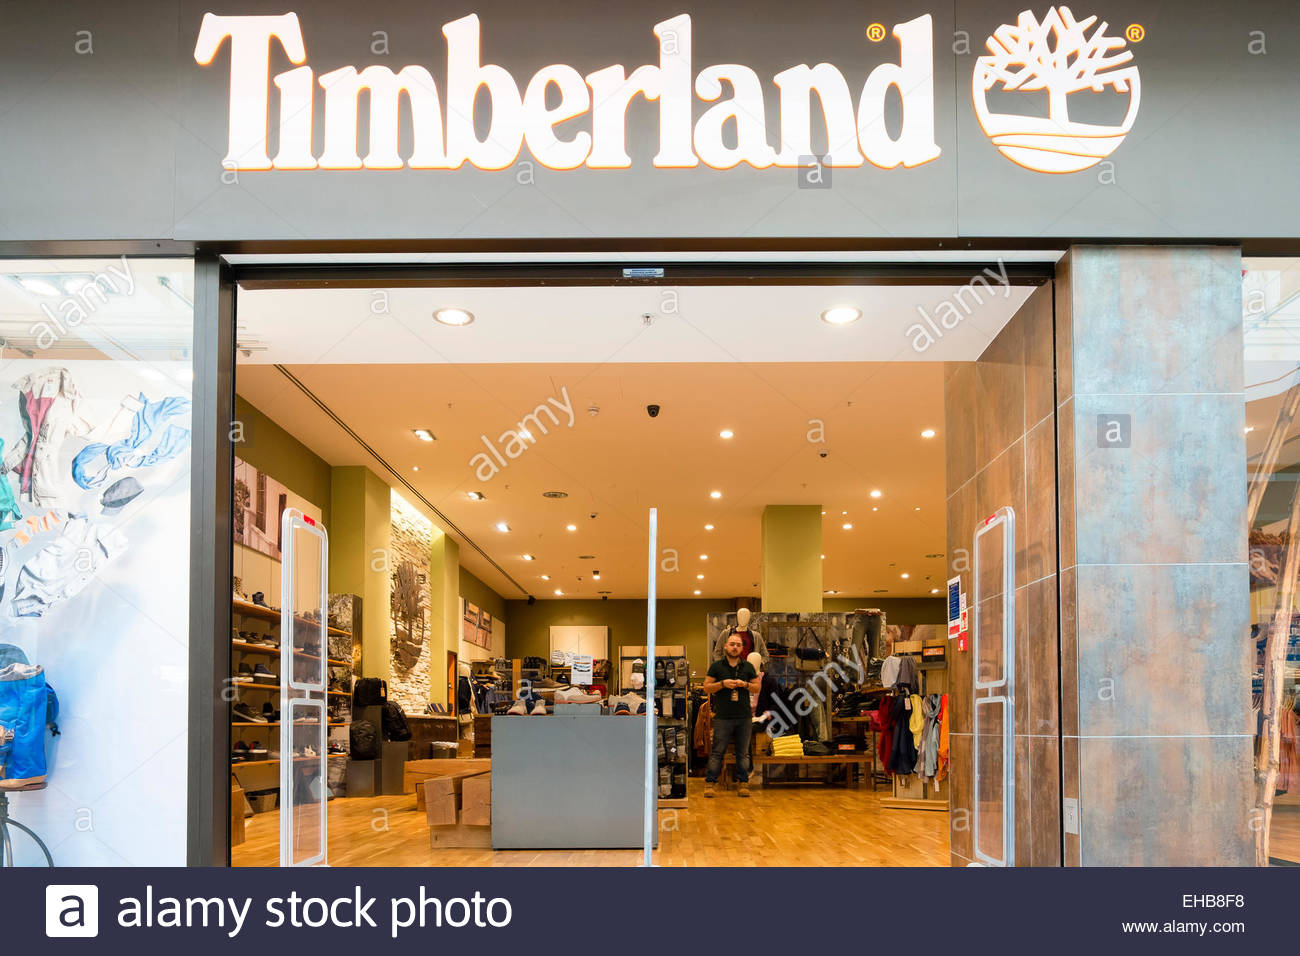 timberland store in miami